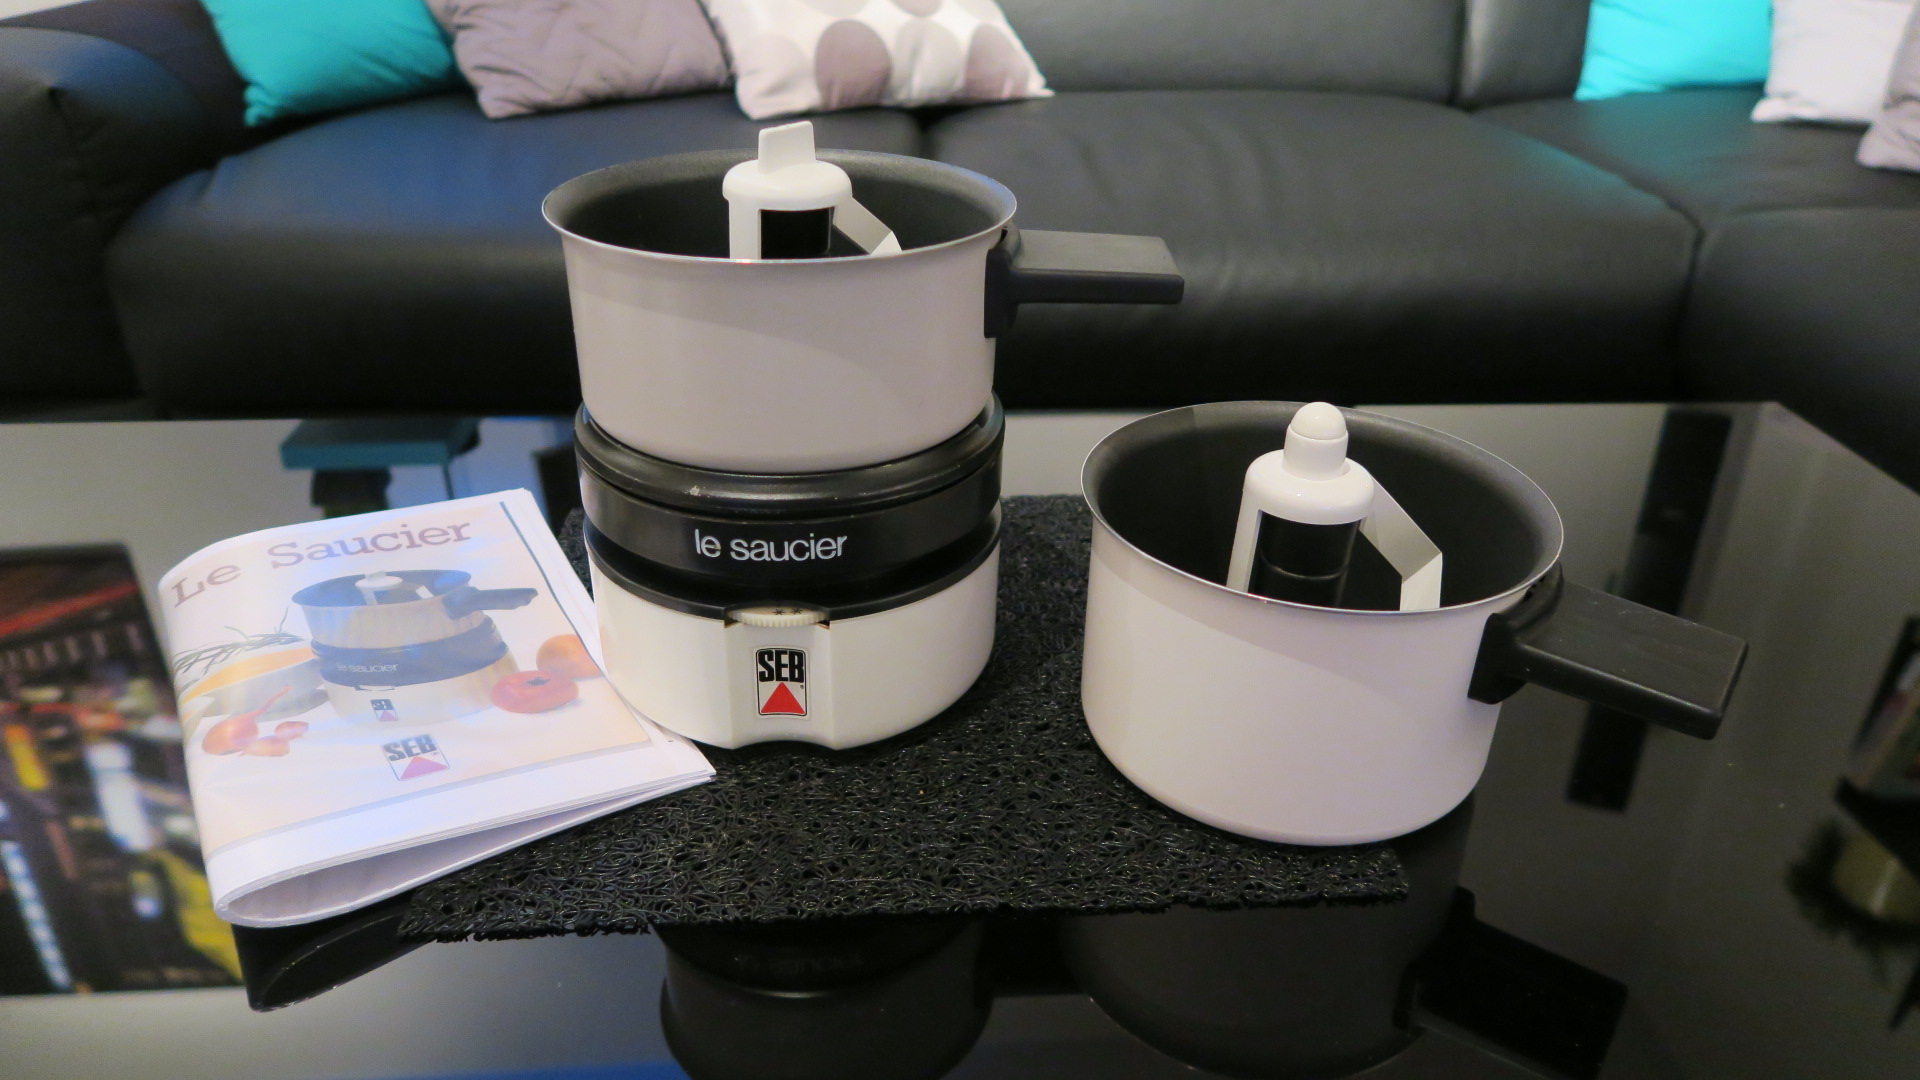 le saucier seb sauce maker seb excellent condition with 2 pots reciepes. Black Bedroom Furniture Sets. Home Design Ideas